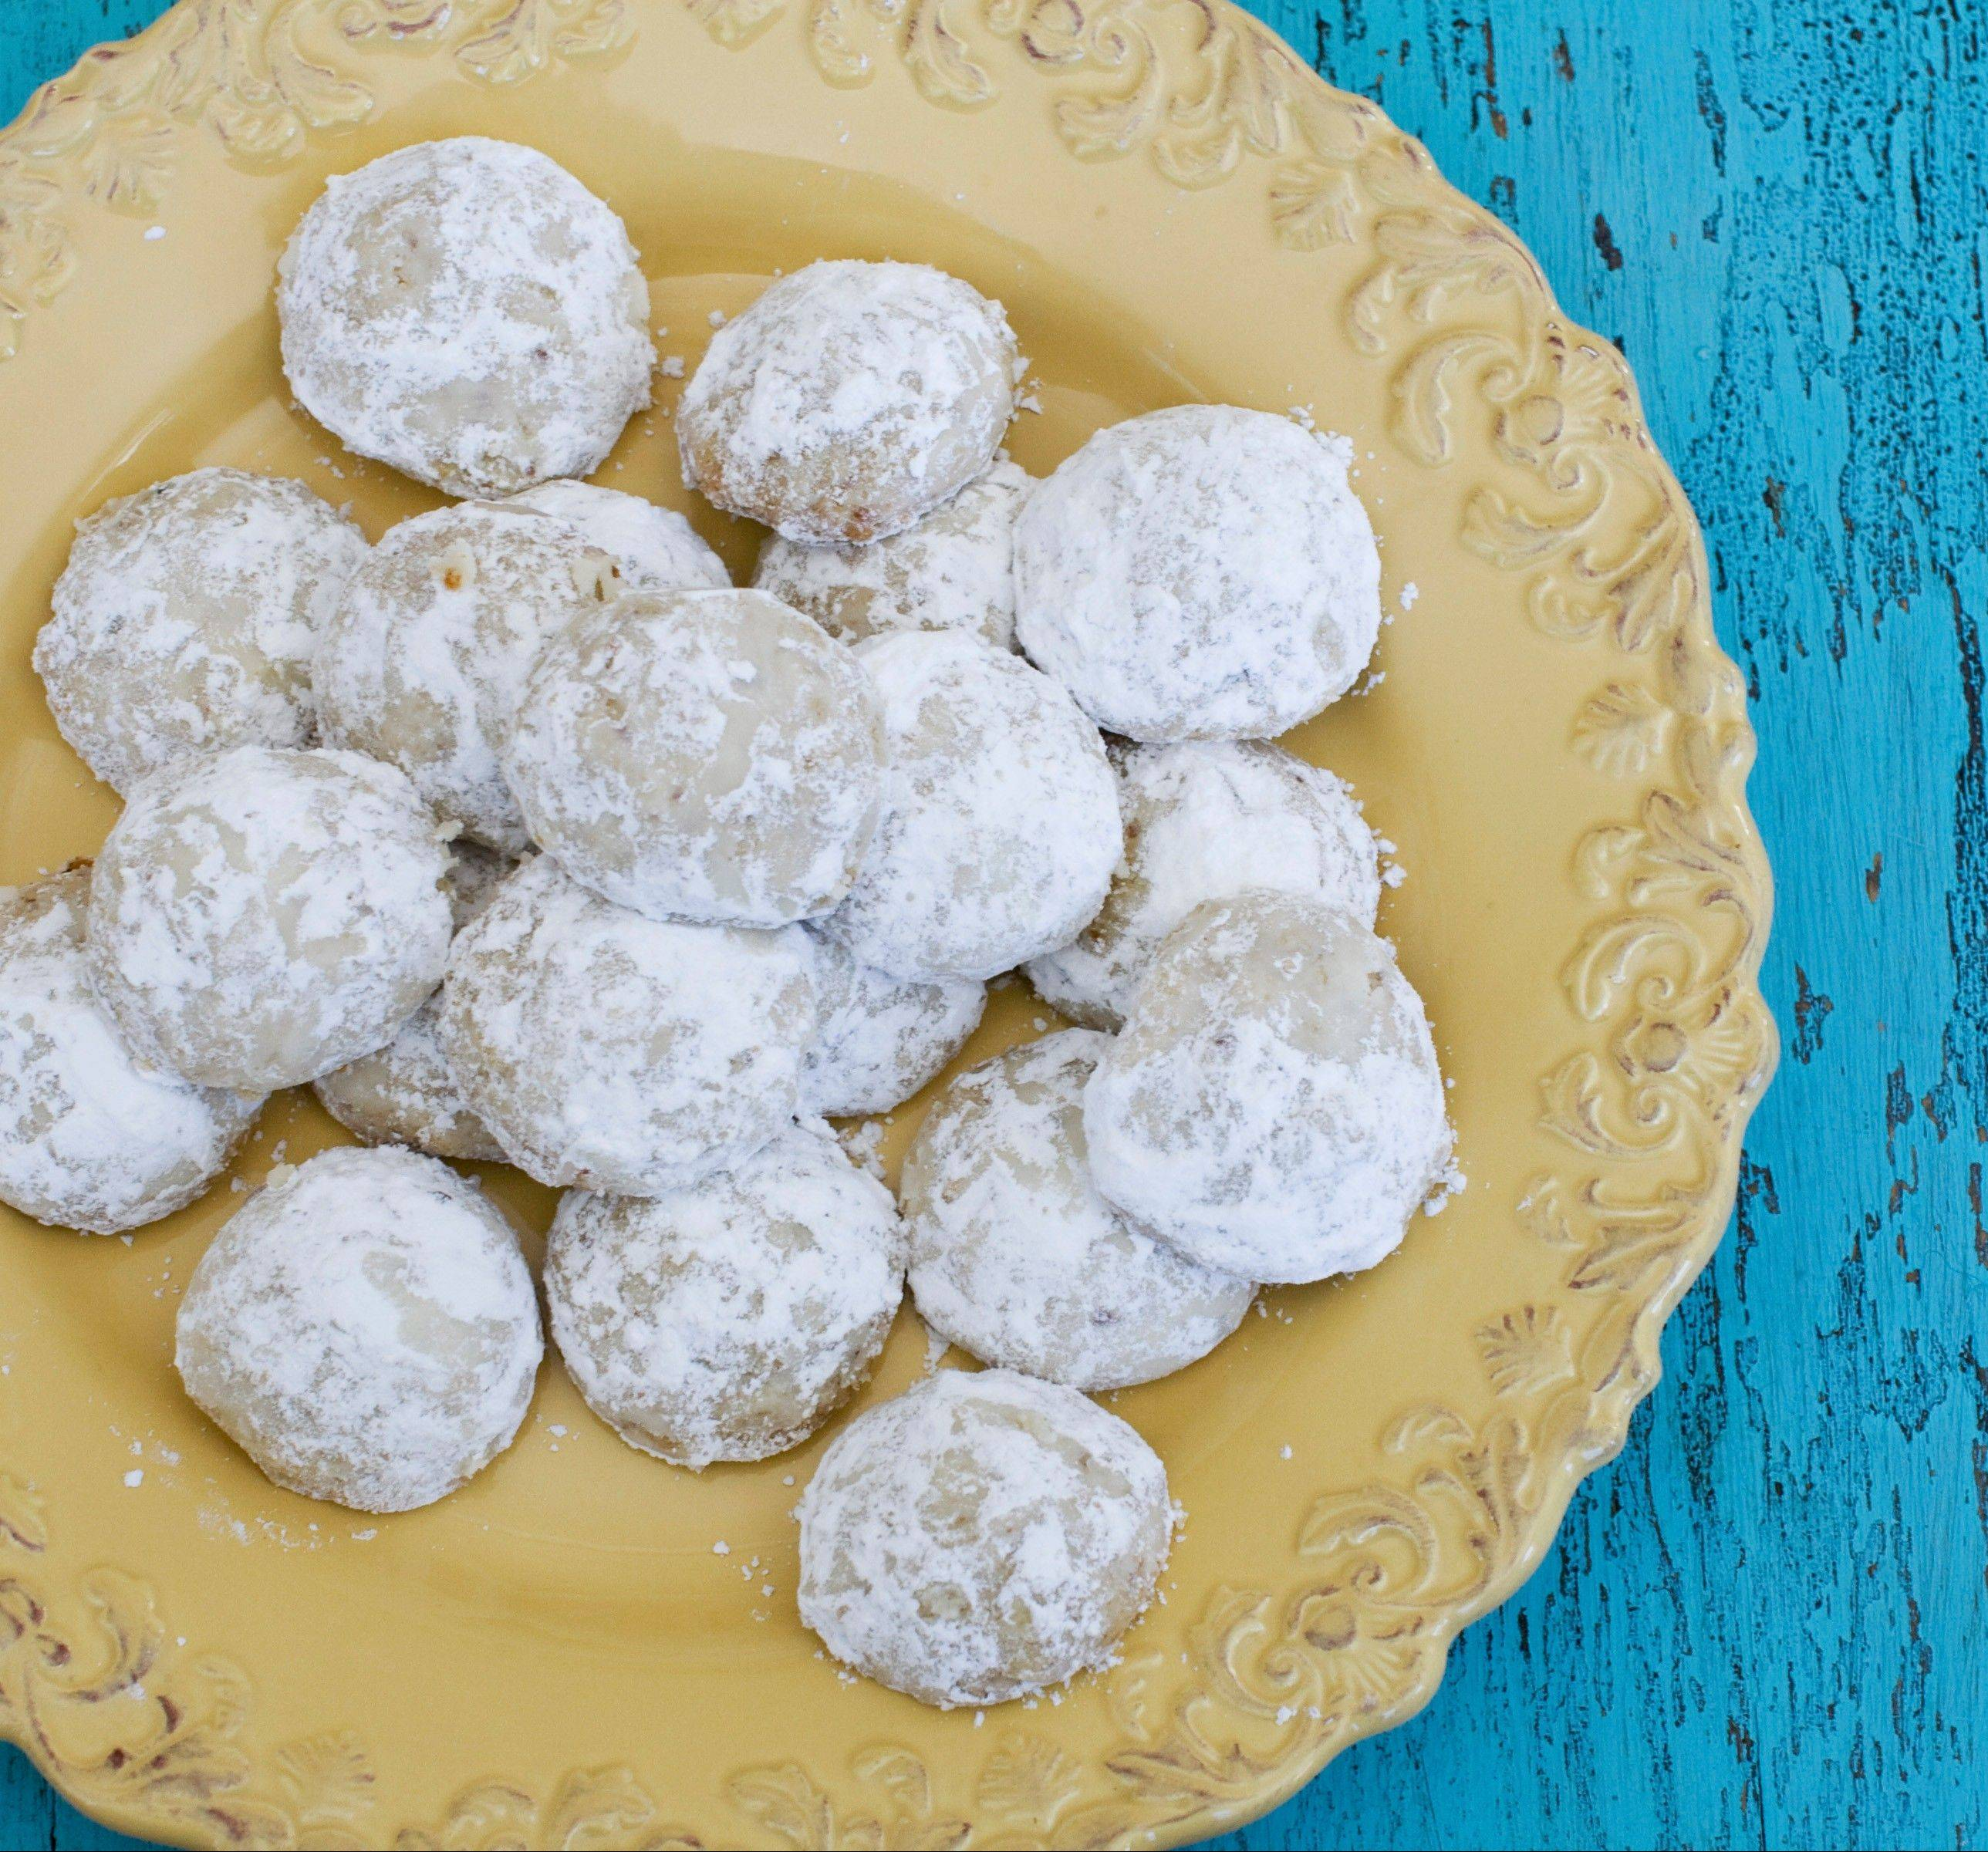 Lemon wedding cookies are a refreshing addition to the Easter table.